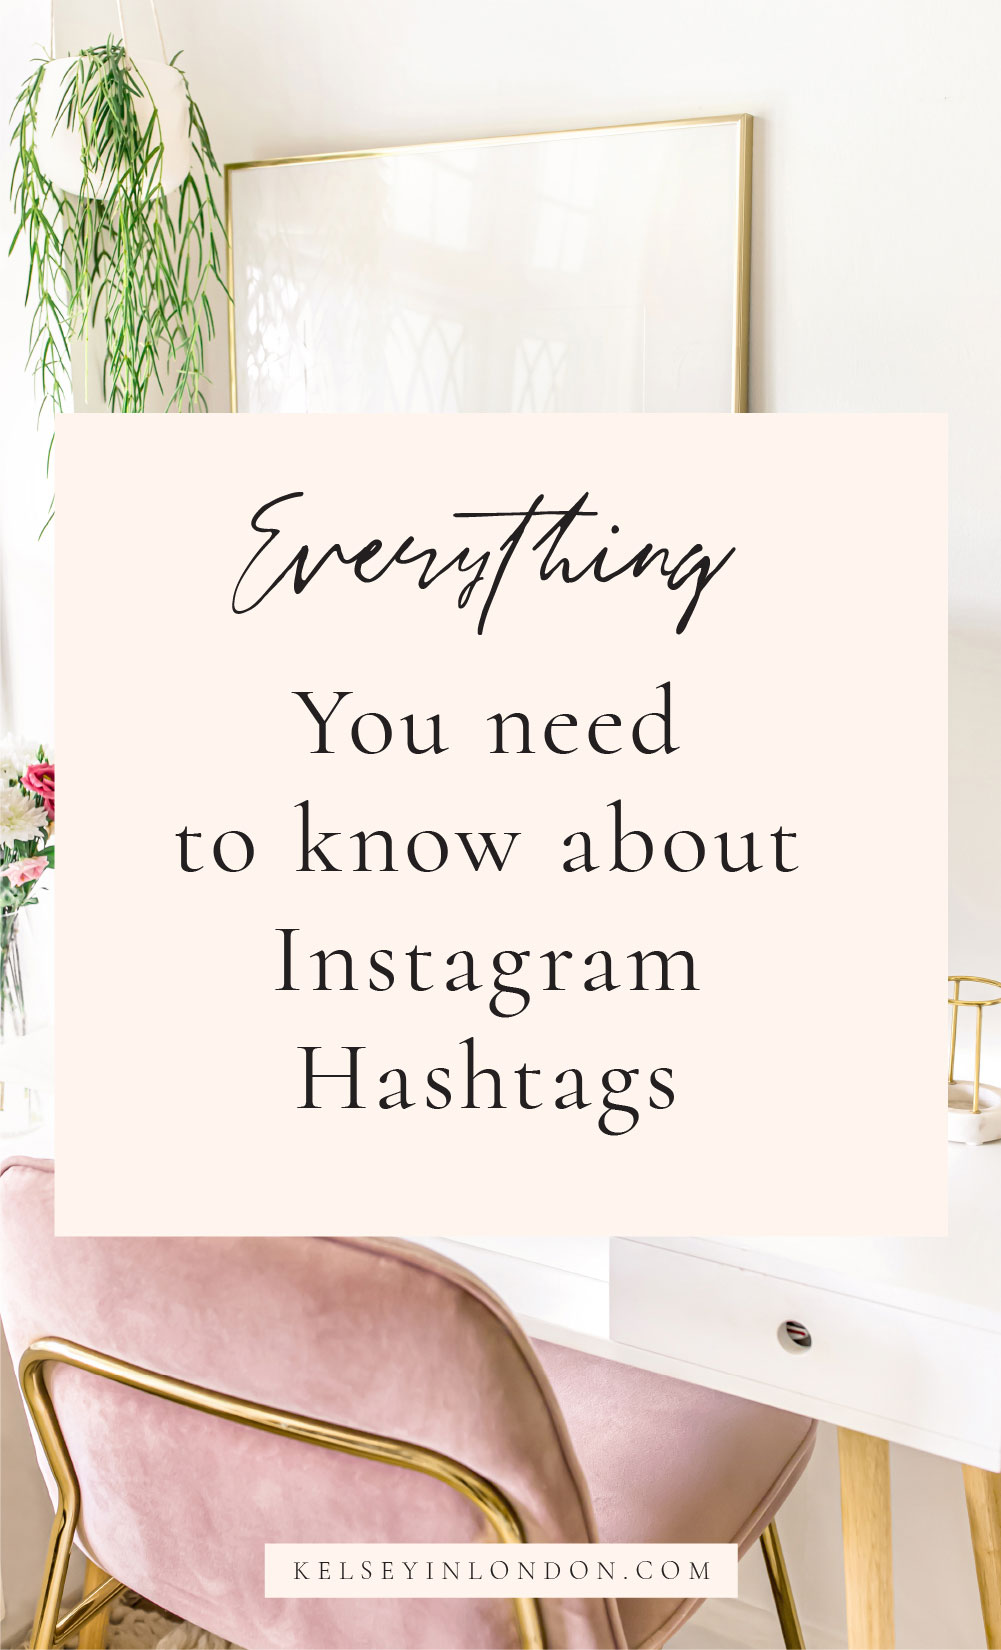 Kelseyinlondon homewithkelsey Kelsey Heinrichs Instagram hashtags strategy how to get 10000 followers on instagram growth social media tips